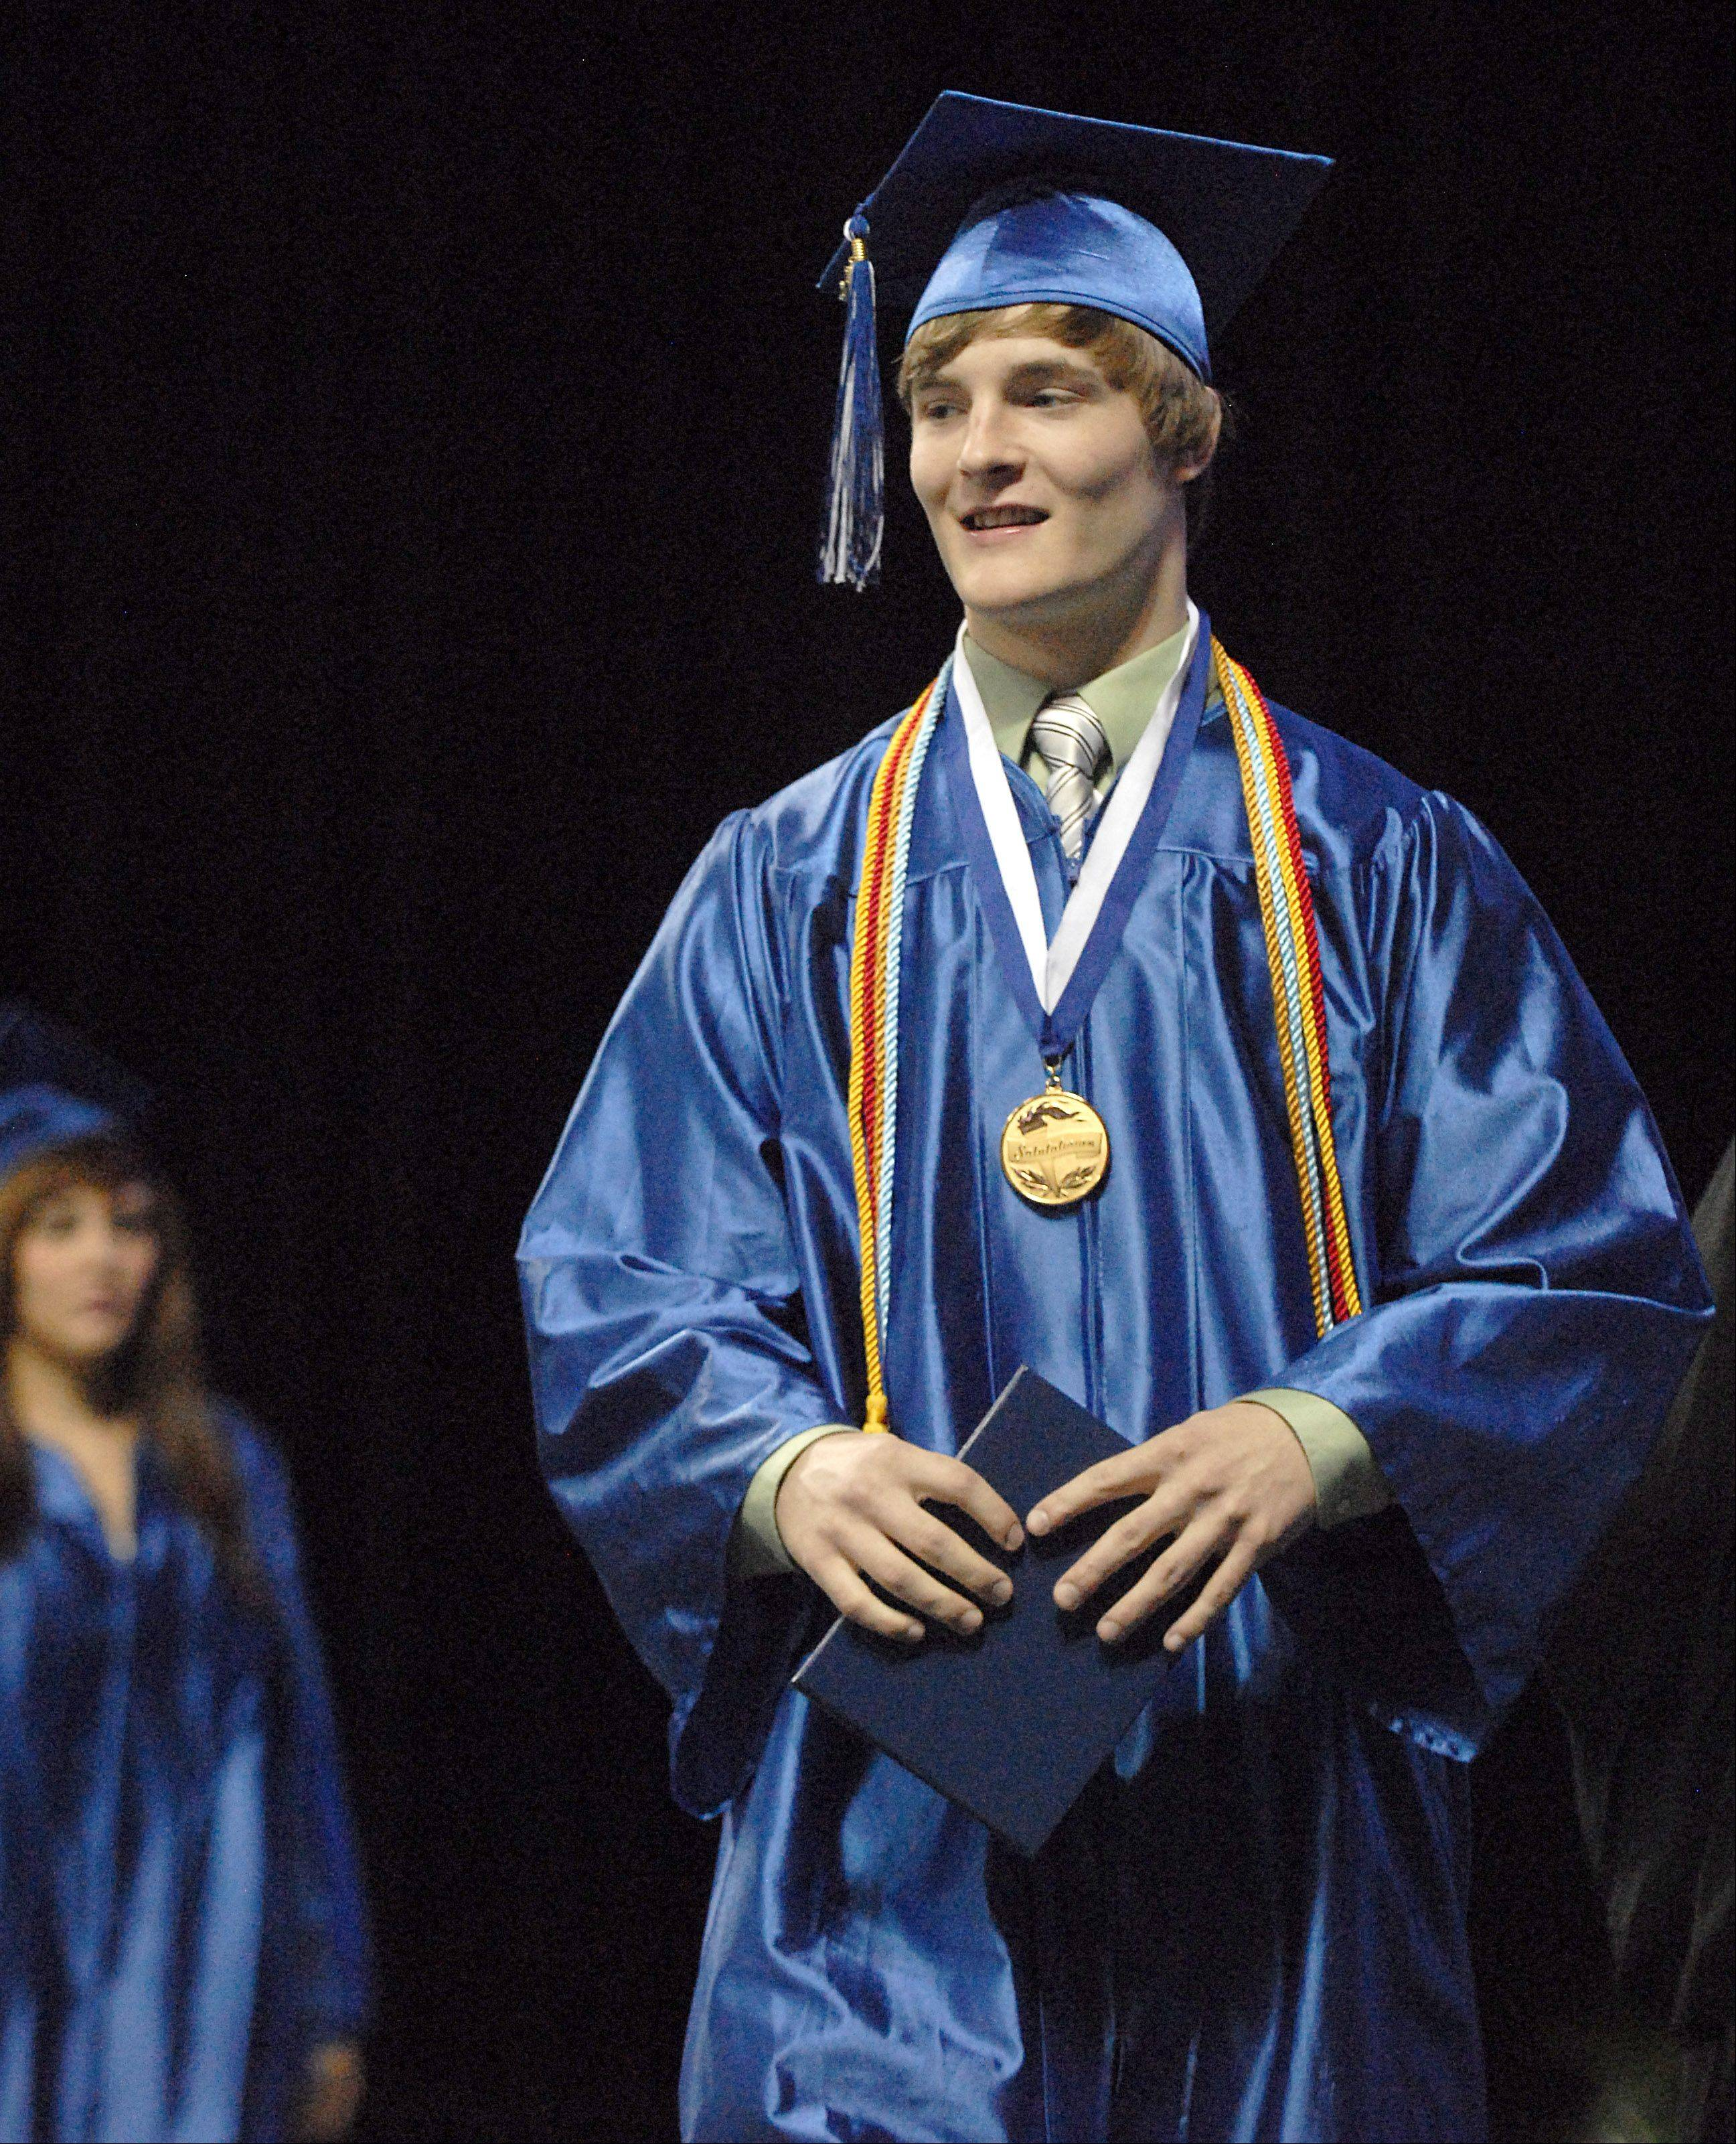 Brett Barry walks off stage with diploma in hand at Larkin High School's commencement ceremony.